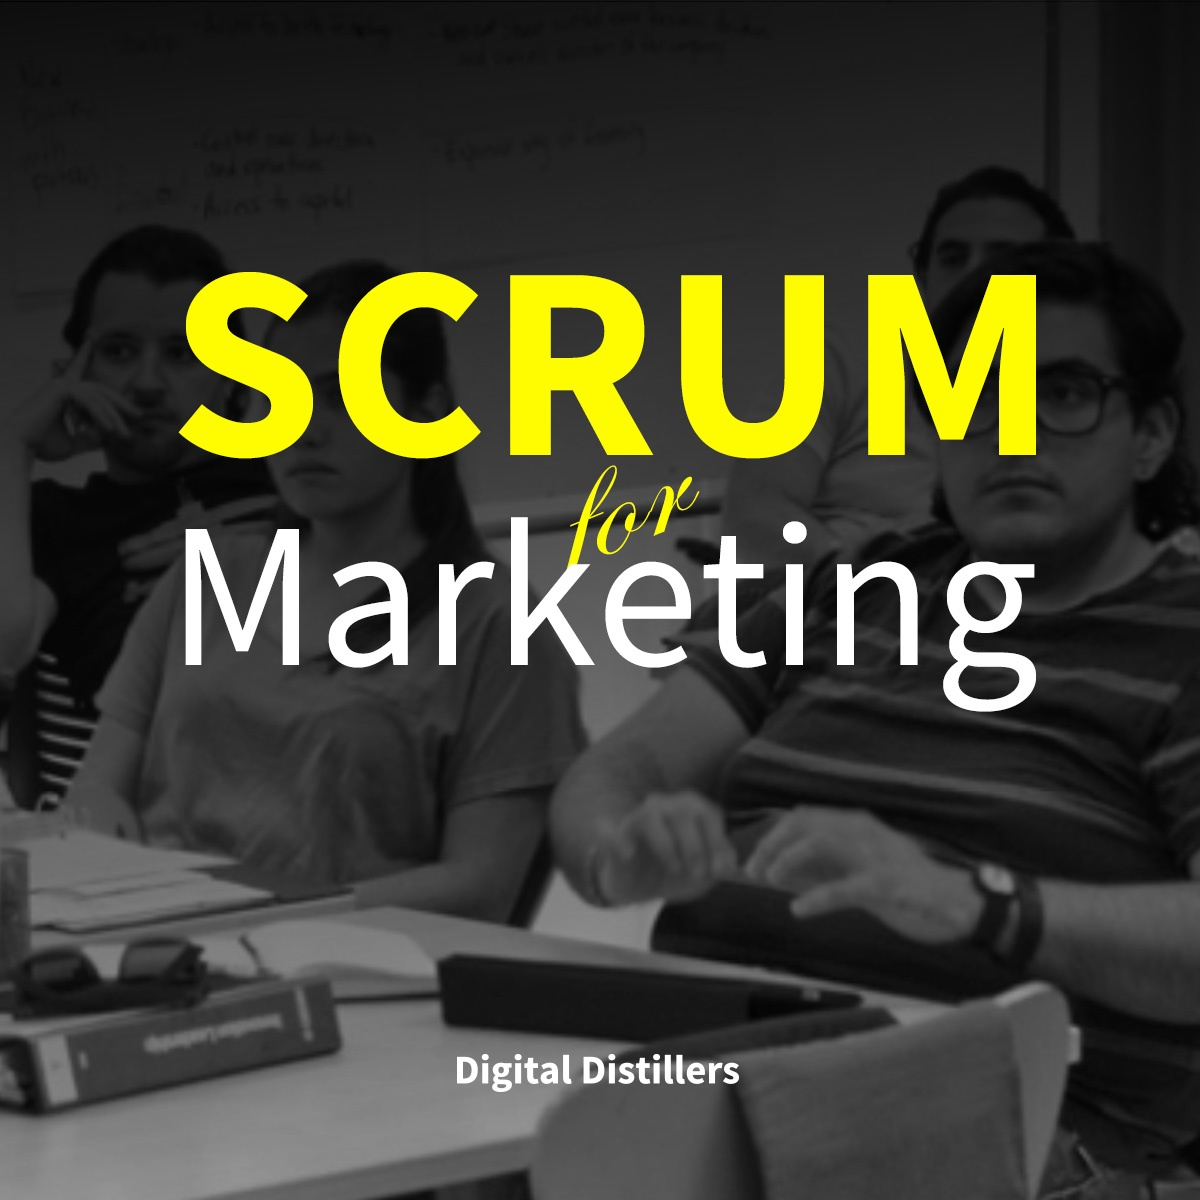 Scrum for Marketing